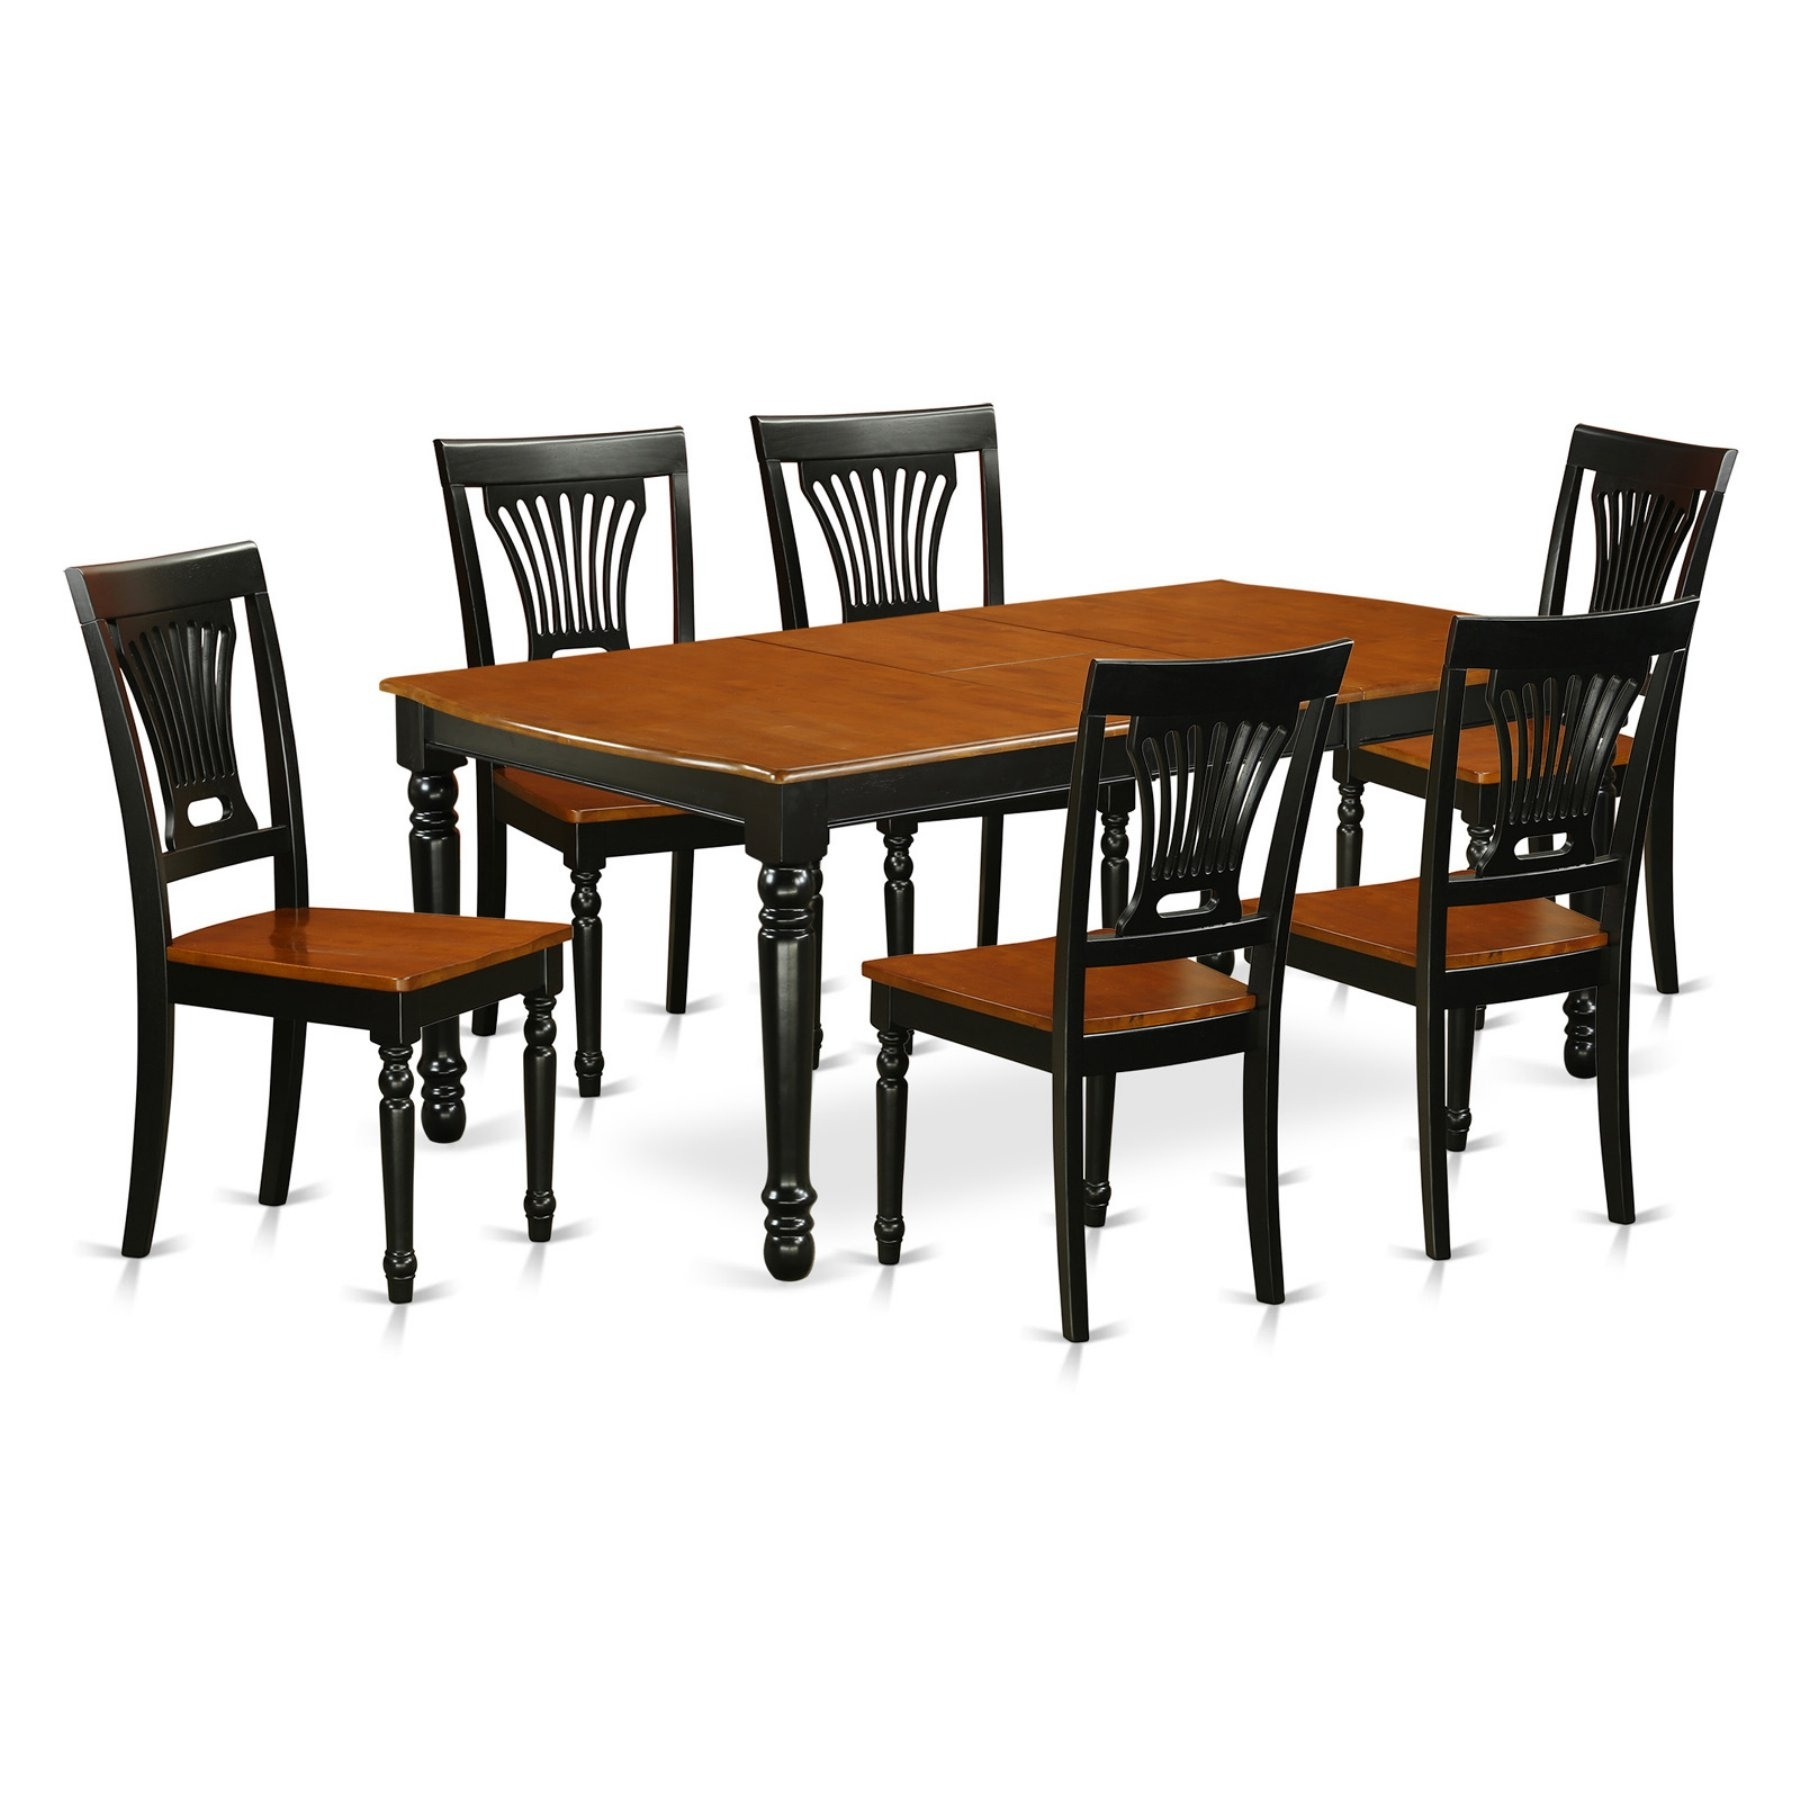 East West Furniture Dover Dopl7 Seven Piece Extension Dining Table Regarding Best And Newest Parquet 6 Piece Dining Sets (Photo 17 of 20)